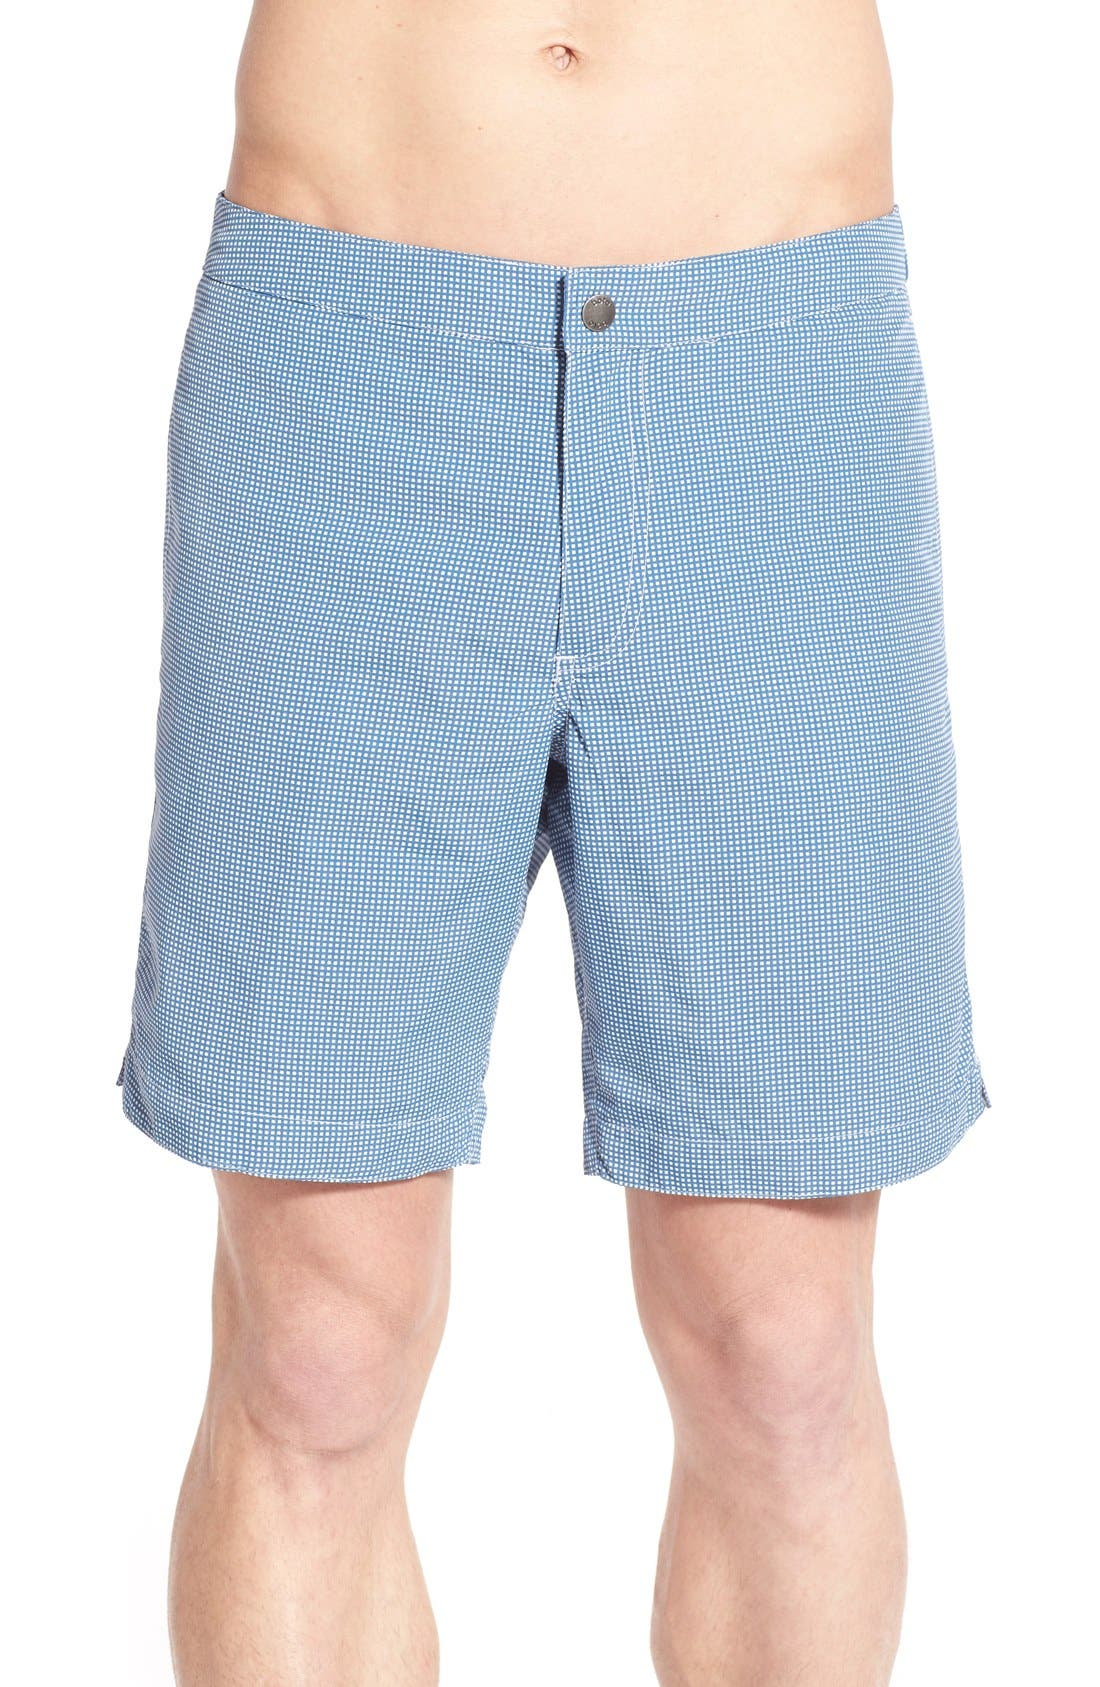 Aruba Tailored Fit Microcheck 8.5 Inch Swim Trunks,                         Main,                         color, MICRO SQUARE ASH BLUE